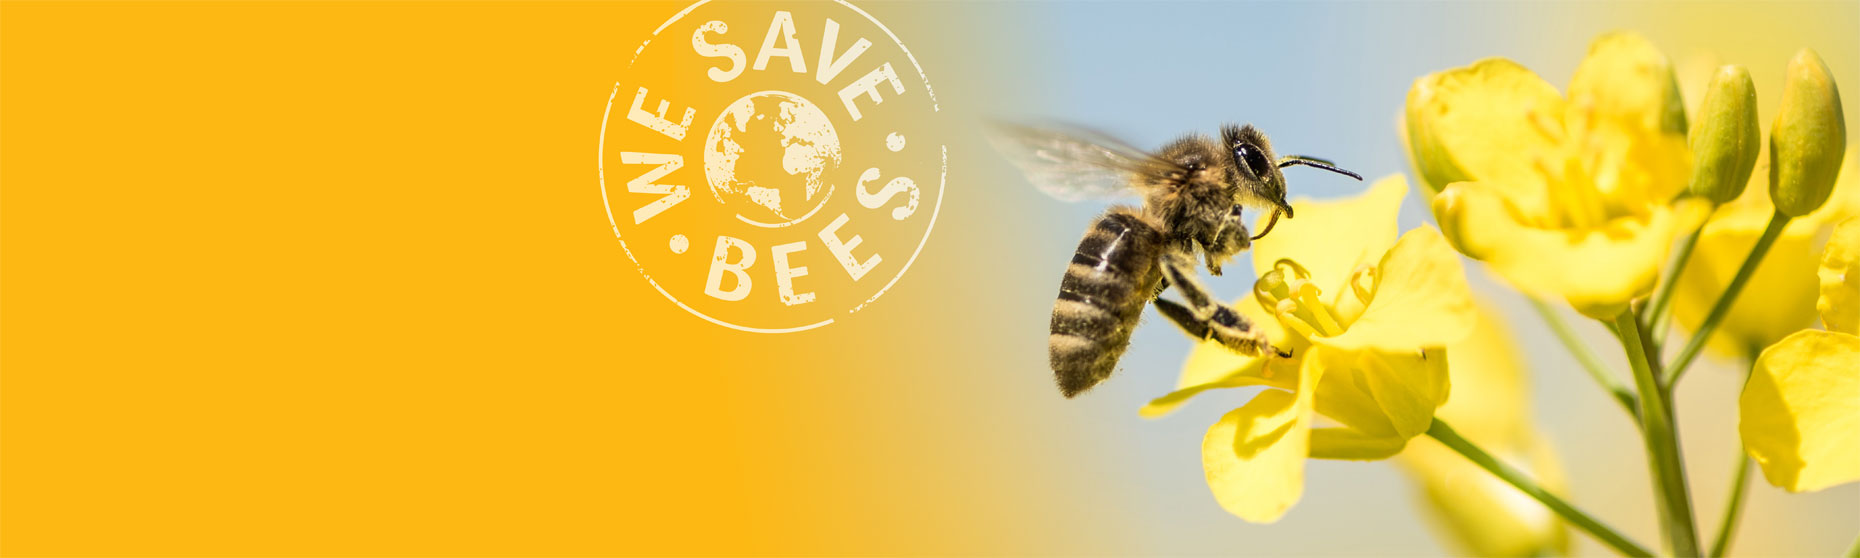 Facts that threaten UK honey bees